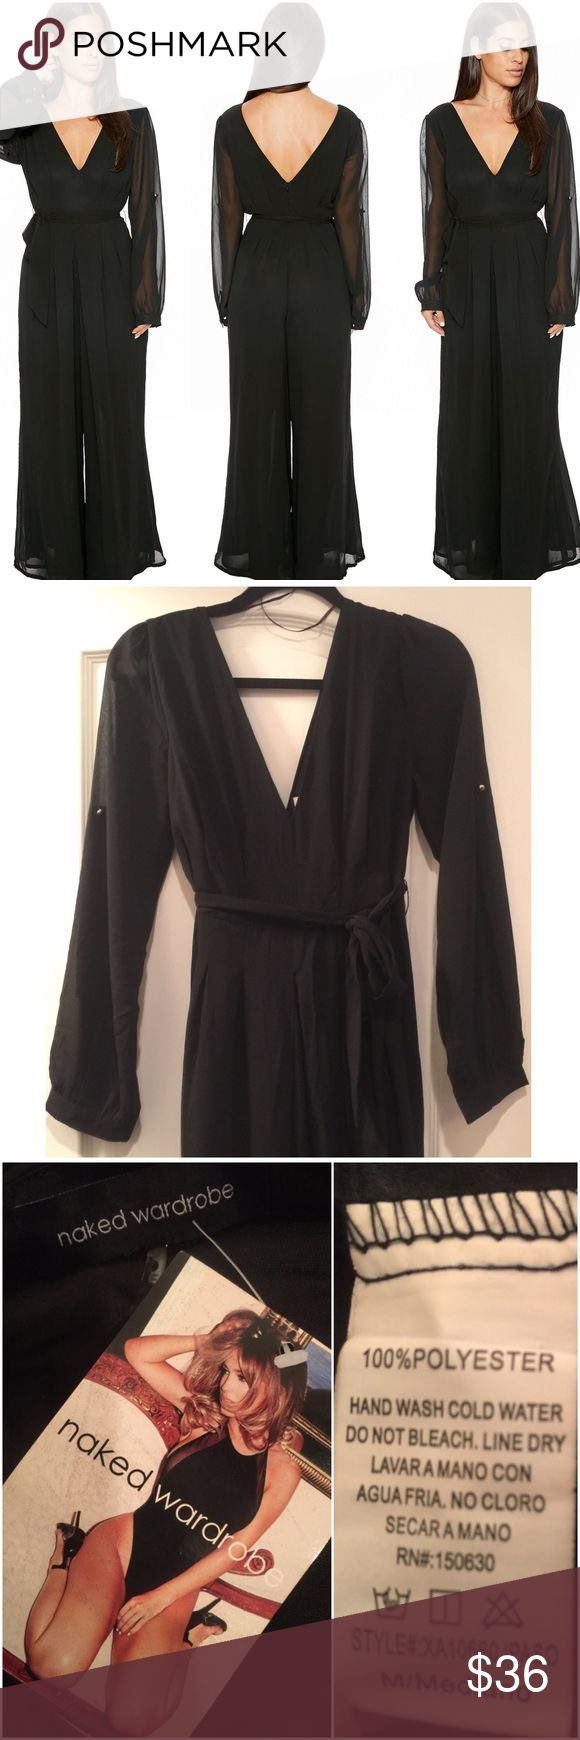 NAKED WARDROBE The One & Only Jumpsuit. NWT. NAKED WARDROBE The One & Only Jumpsuit. Color: Black. Size MEDIUM. 100% Polyester. V Neckline. Features Double lining from top to bottom. Brand NEW with TAGS!! Naked Wardrobe Pants Jumpsuits & Rompers